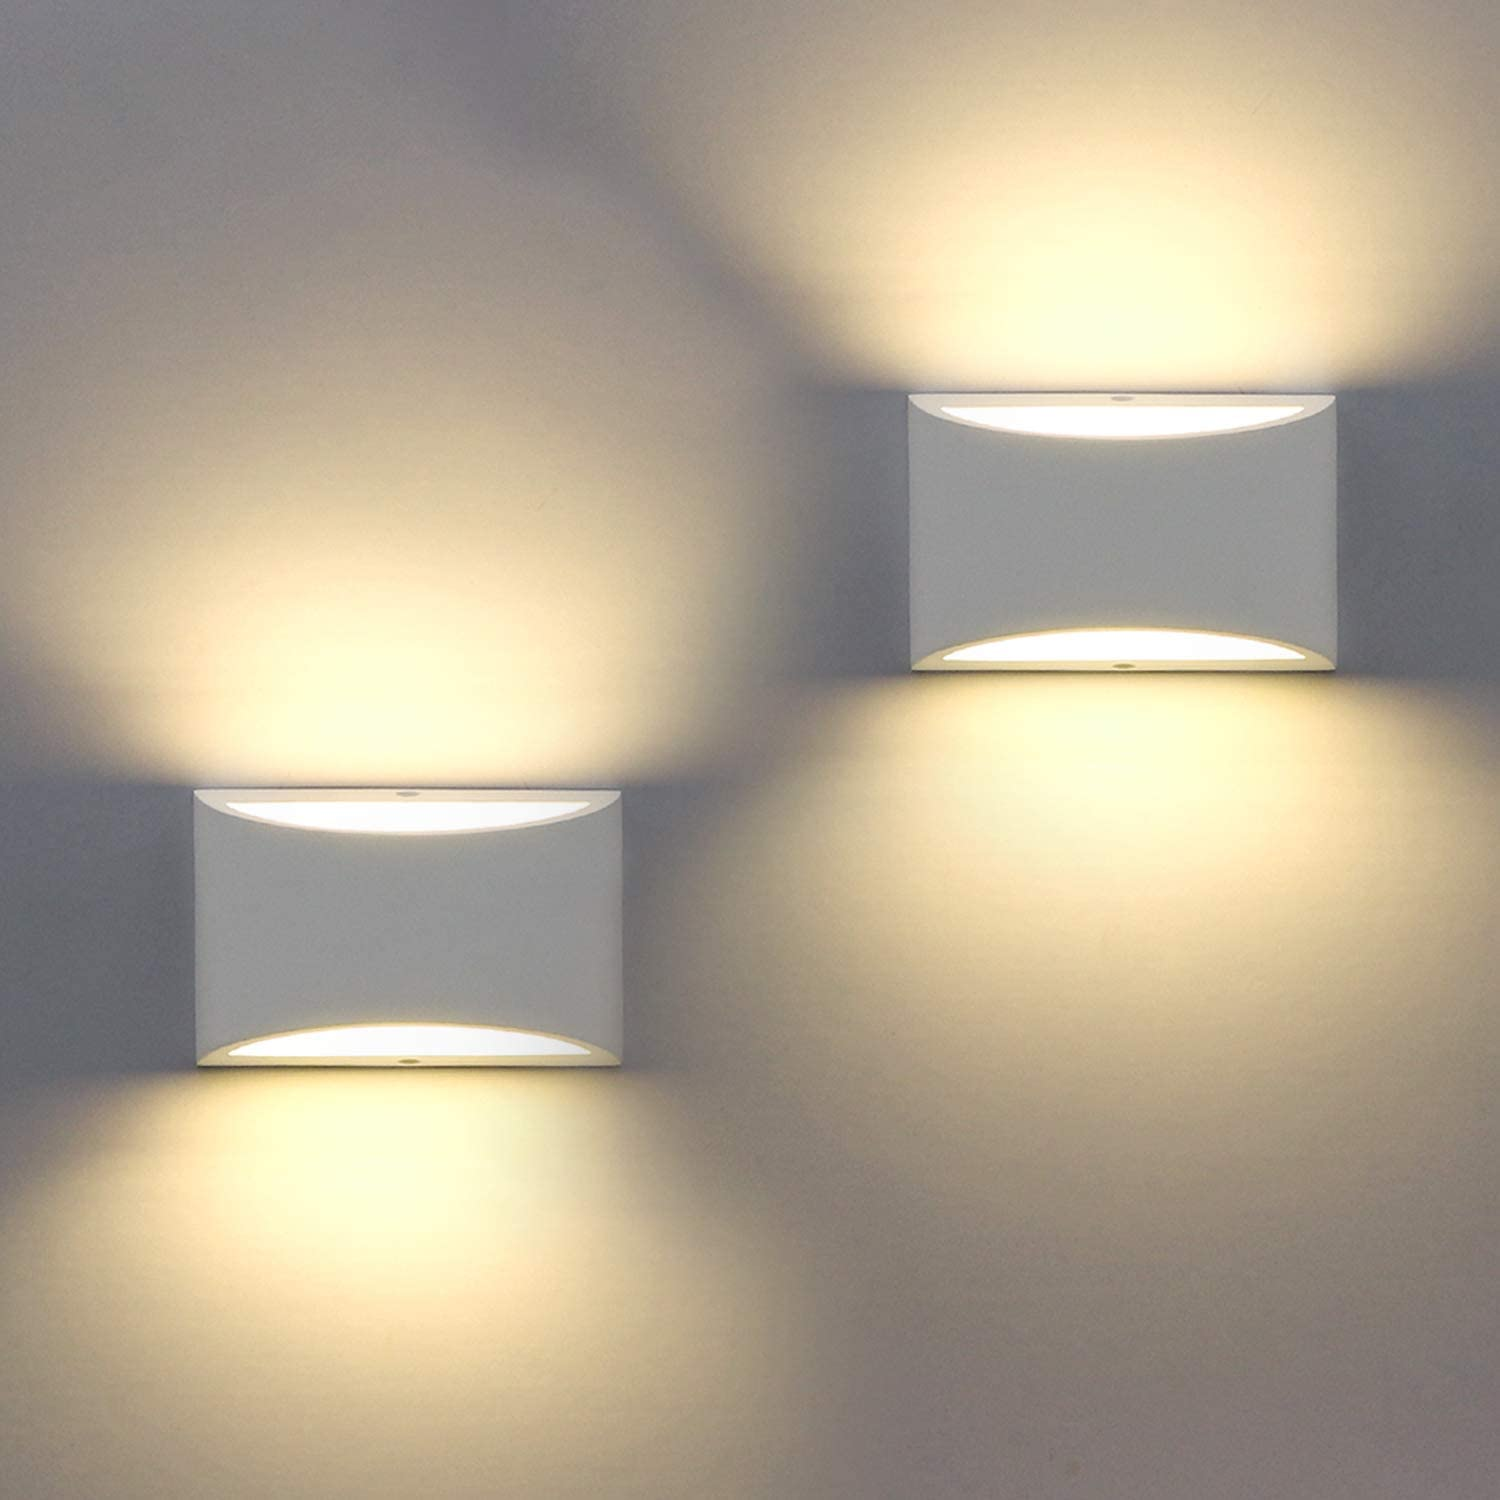 2 Pack Modern Wall Sconce Sobrovo Indoor Wall Lights Uplighter Downlighter Gypsum Plaster Sconce Lighting With 2700k 7w G9 Led Bulbs For Bedroom Hallway Porch Corridor Stairs Not Battery Operated Amazon Com